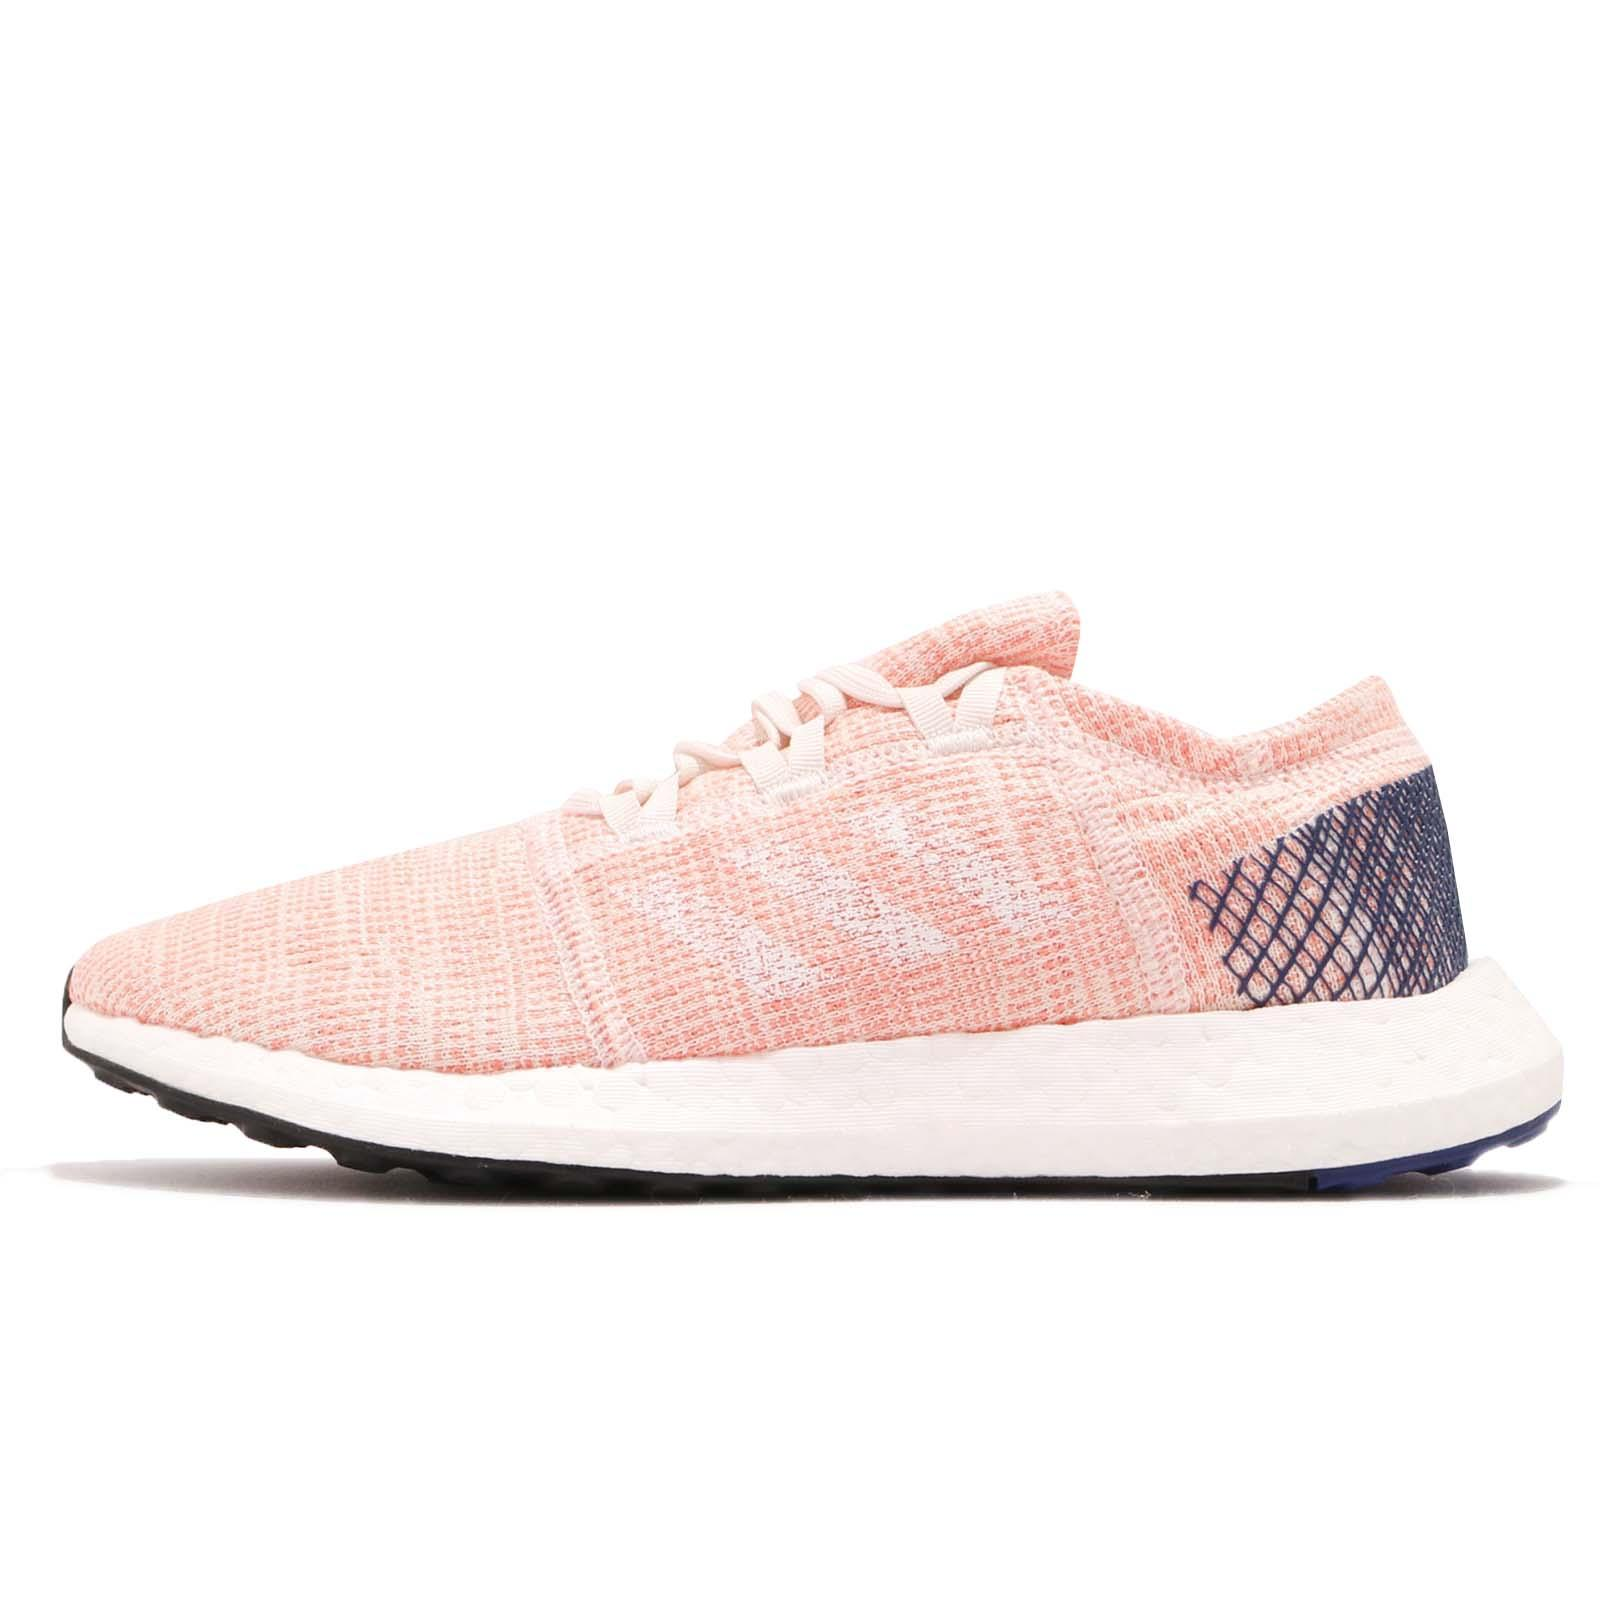 6bfe1c99f78 adidas PureBOOST Go W Pink Mystery Ink White Women Running Shoes Sneakers  B75666